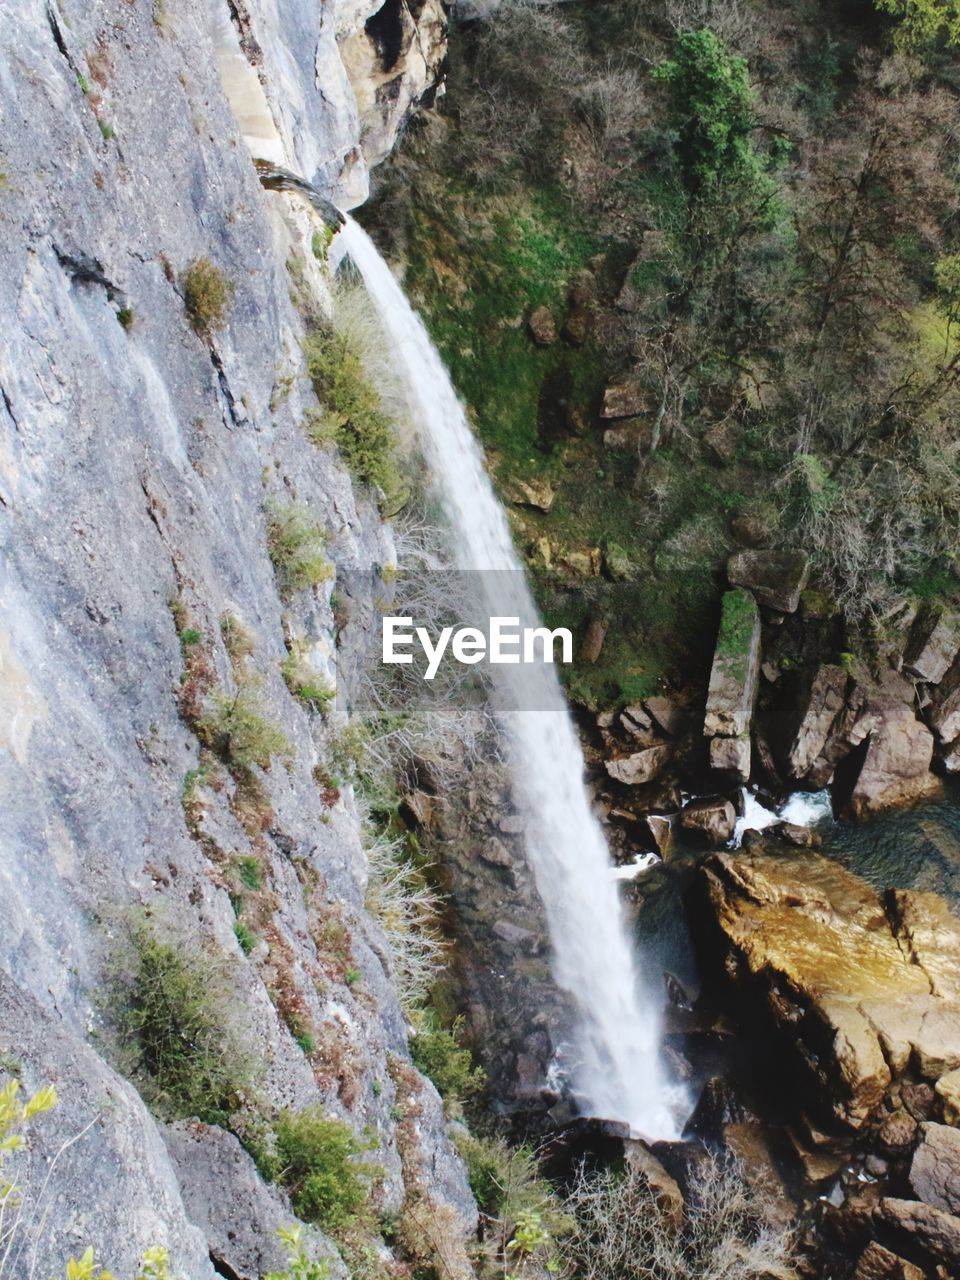 waterfall, motion, rock - object, nature, water, long exposure, rock formation, scenics, beauty in nature, outdoors, blurred motion, river, tourism, rapid, no people, travel, power in nature, cliff, day, travel destinations, mountain, forest, rock face, freshness